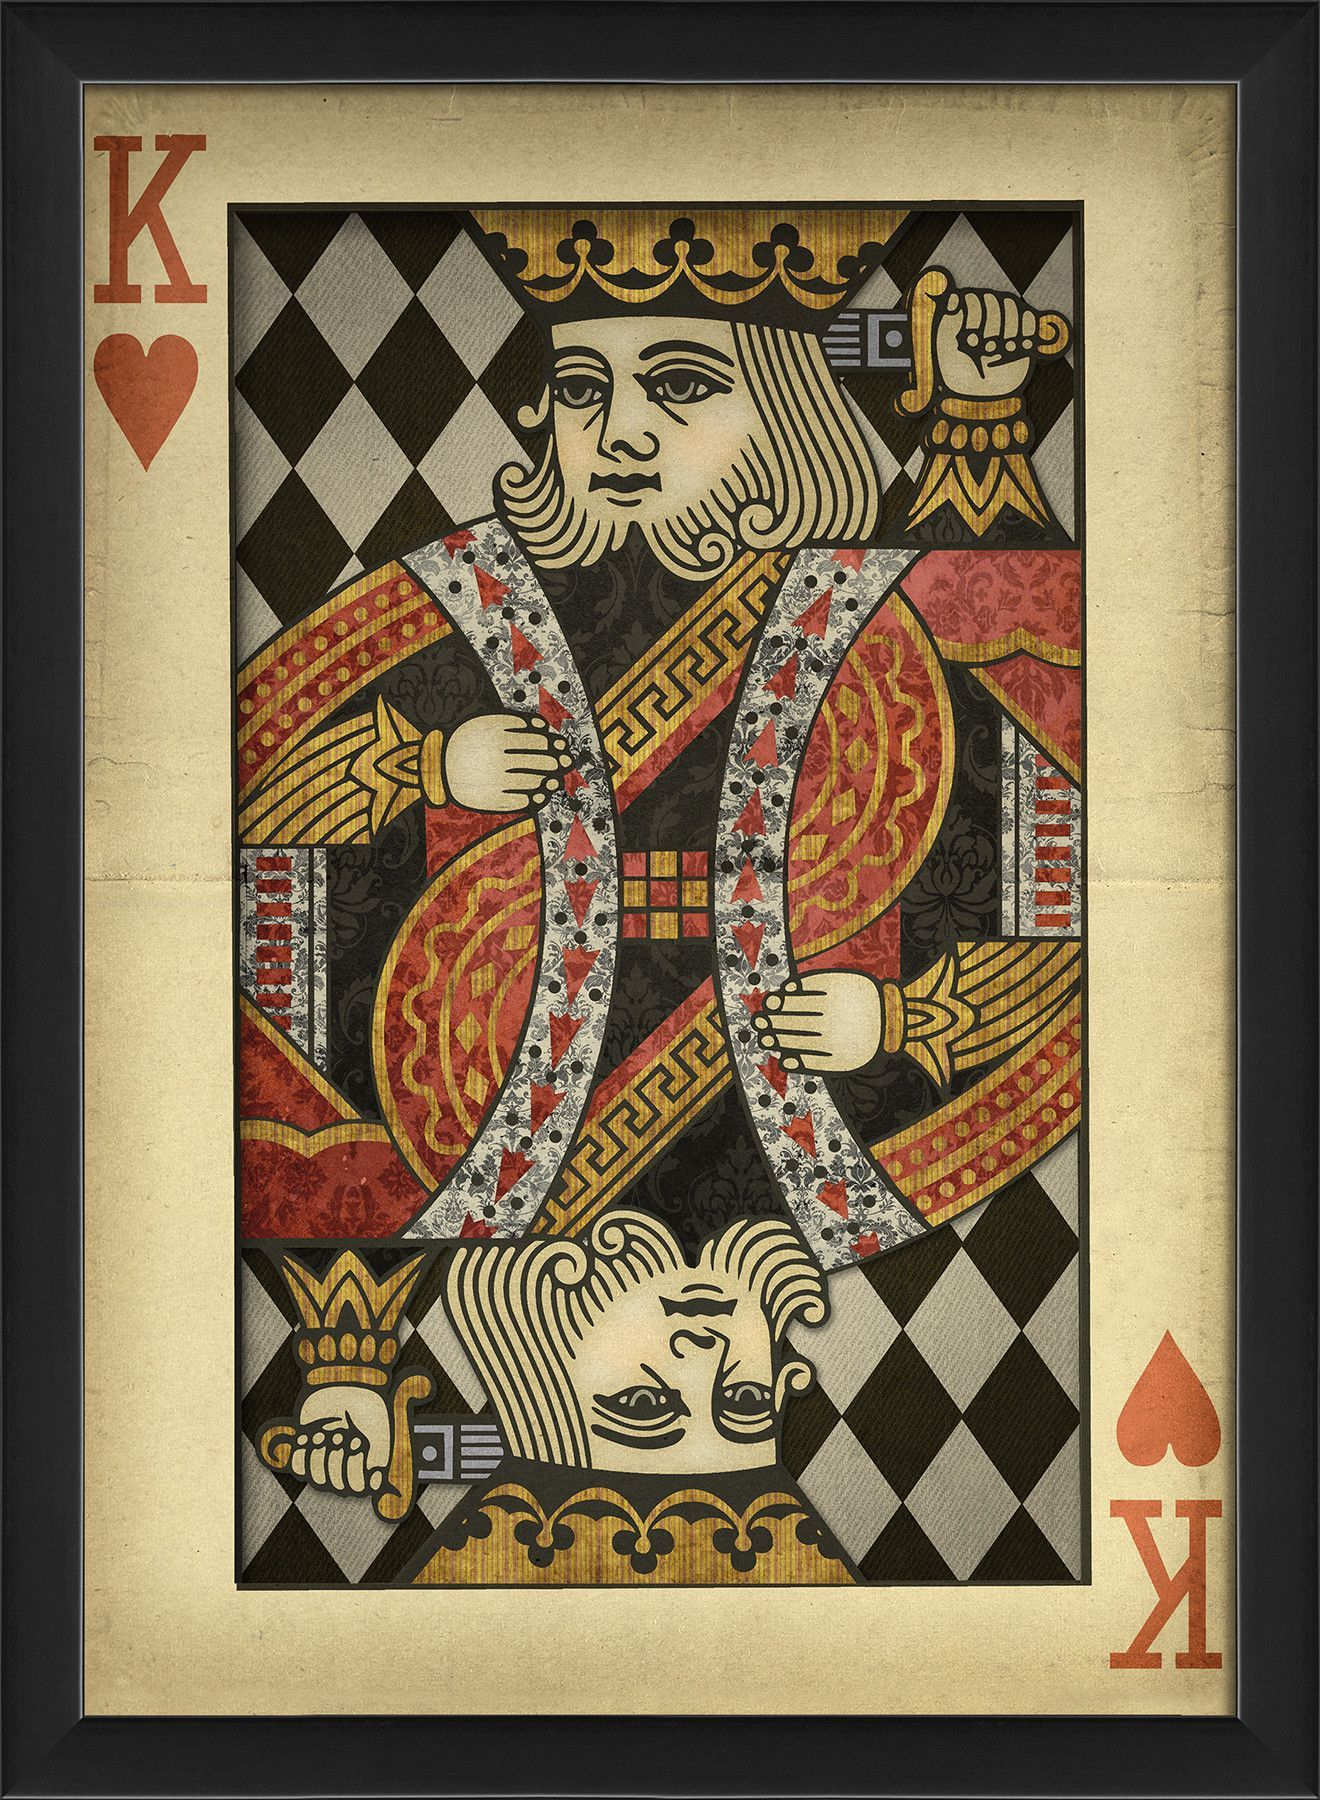 King of Hearts Harlequin Playing Card Framed Graphic Art | Pinterest ...